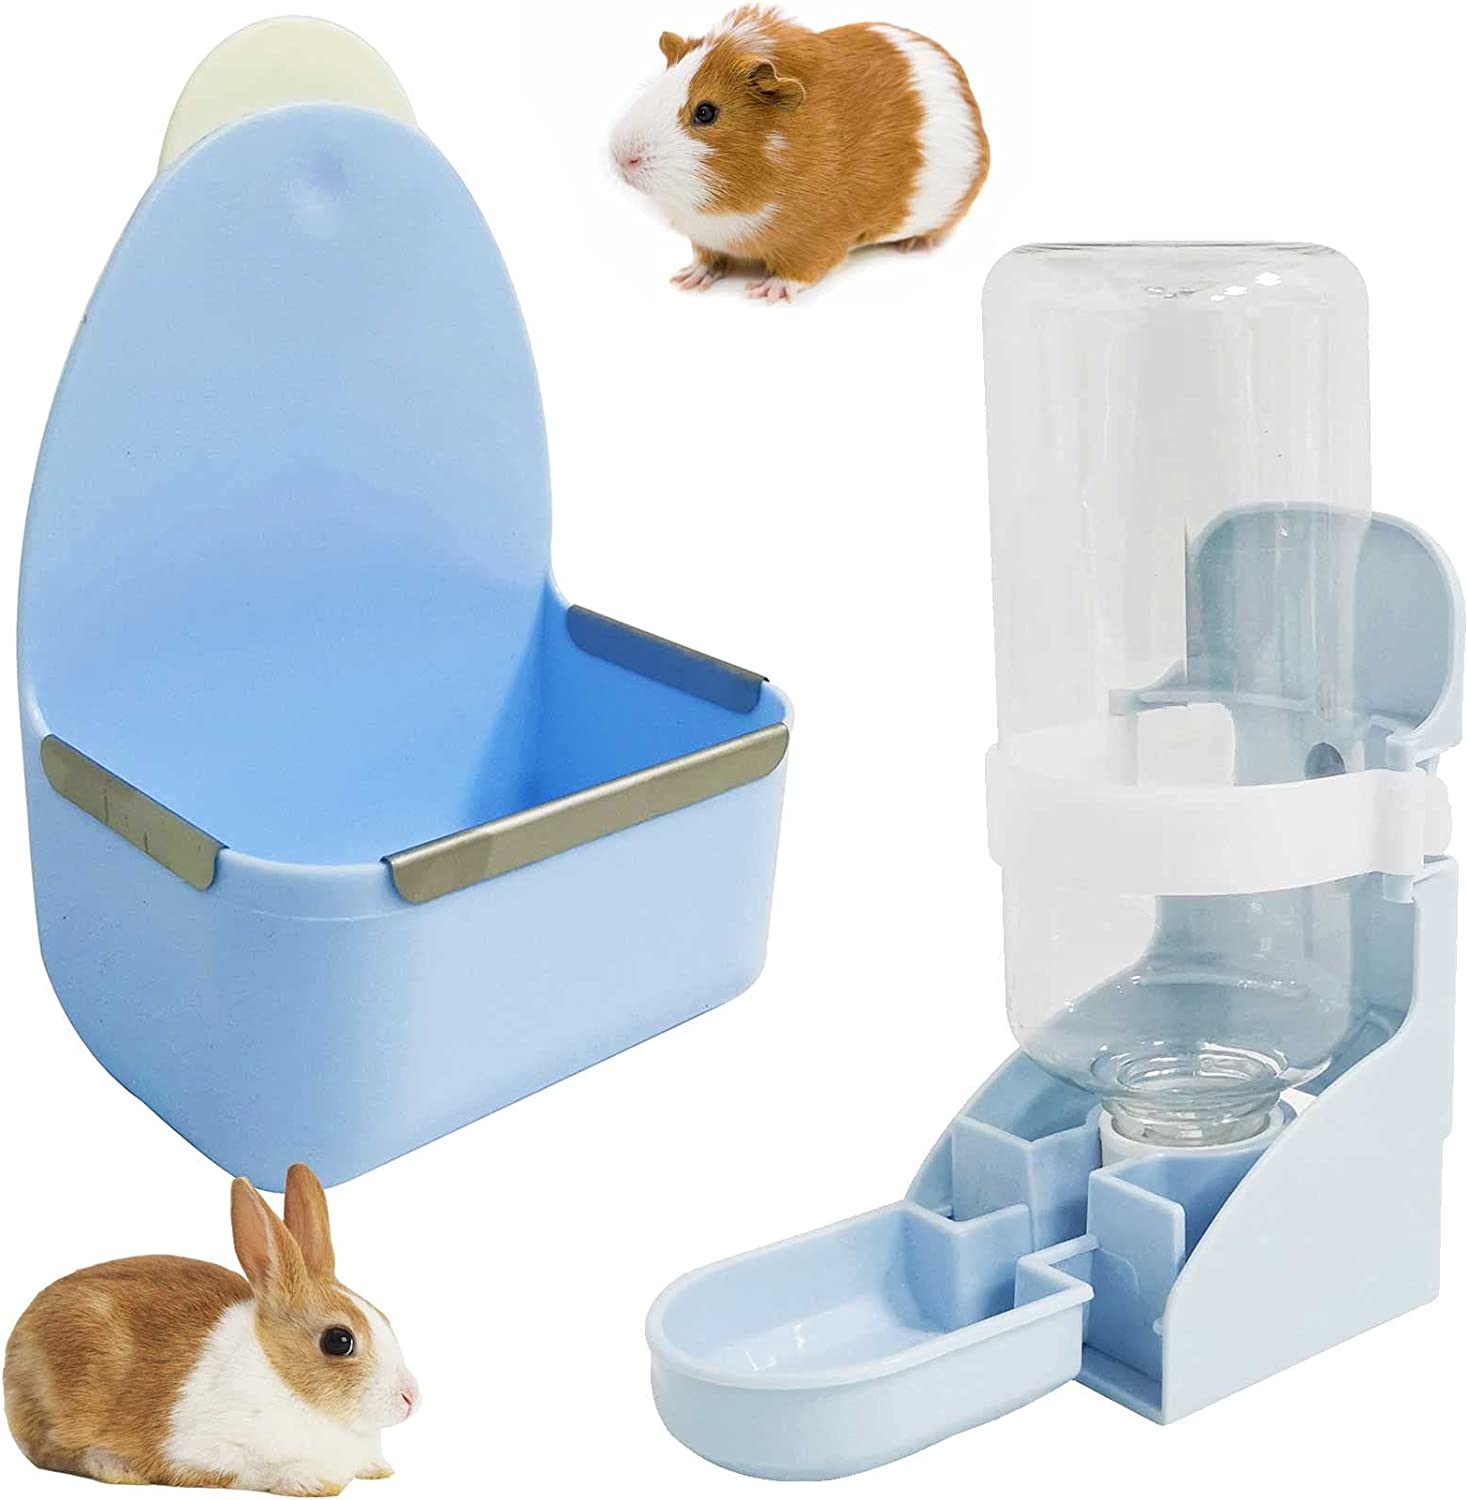 kathson Rabbit Food Bowl and Water Bottle Hanging Water Automatic Dispenser Small Animal Hay Dish Plastic Cage Feeder for Bunny Guinea Pig Chinchilla Hamster Hedgehog Ferret 2PCS (Blue)